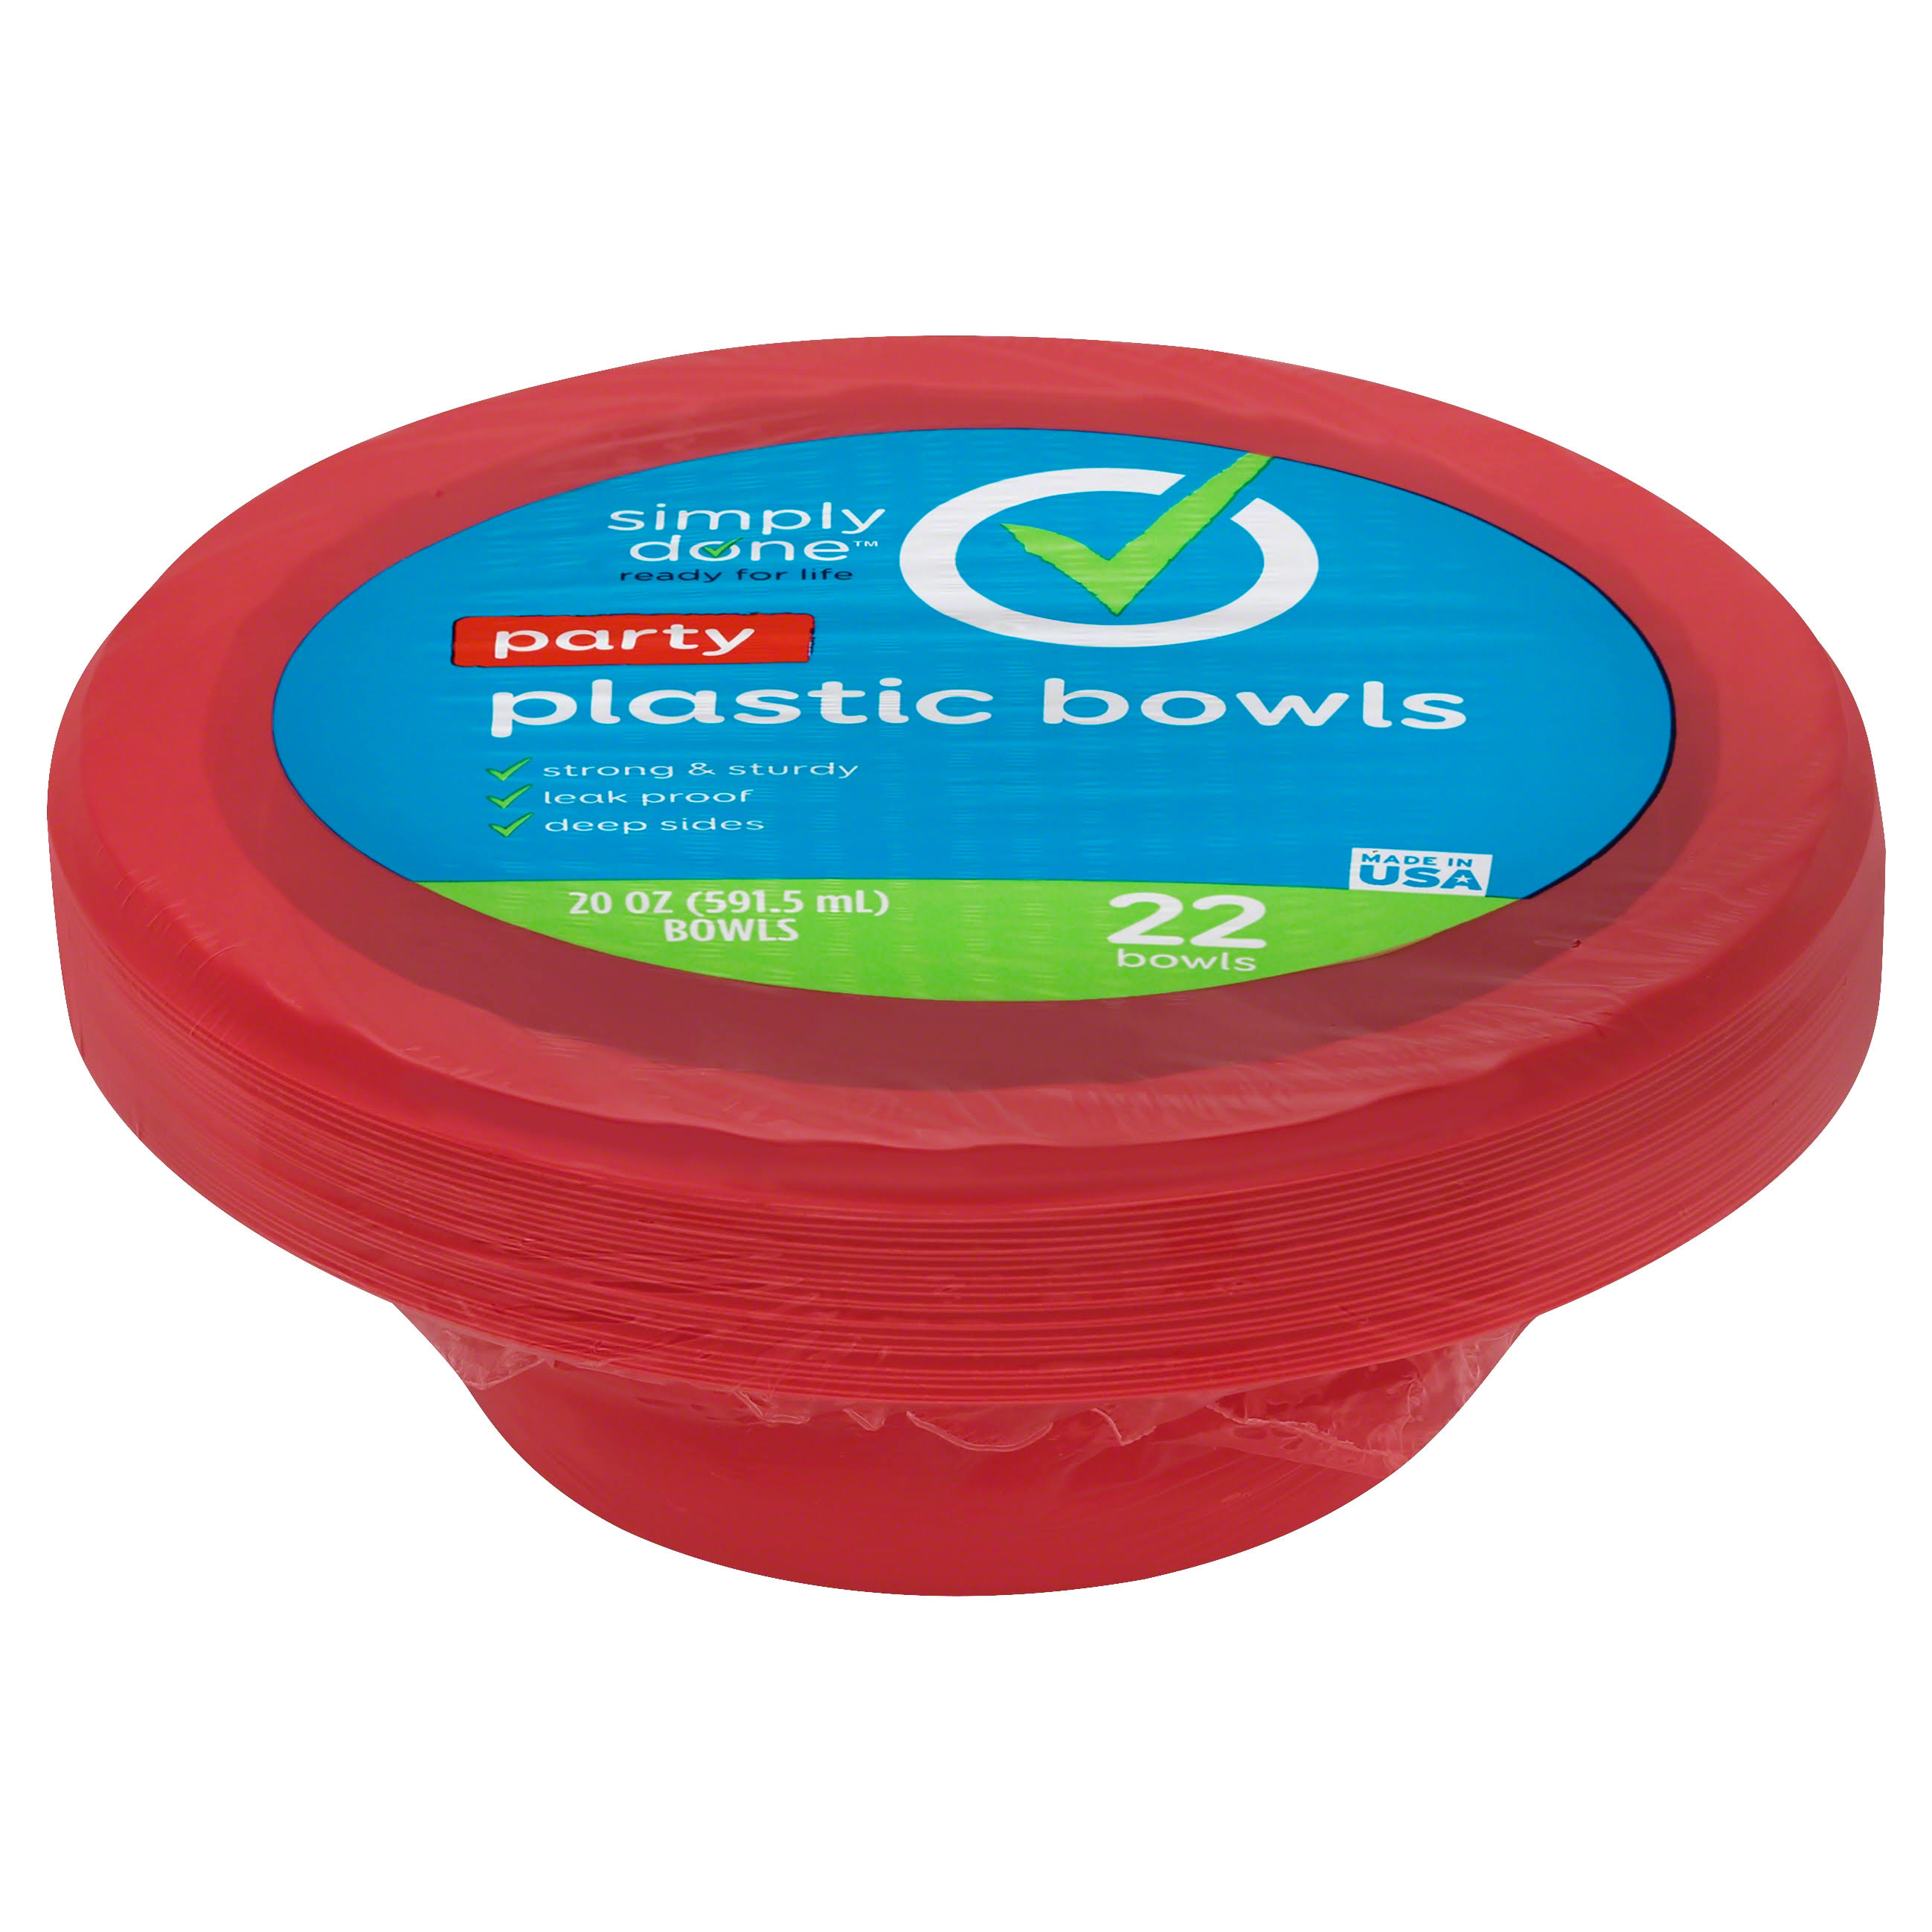 Simply Done Plastic Bowls, Party, 20 Ounce - 22 bowls